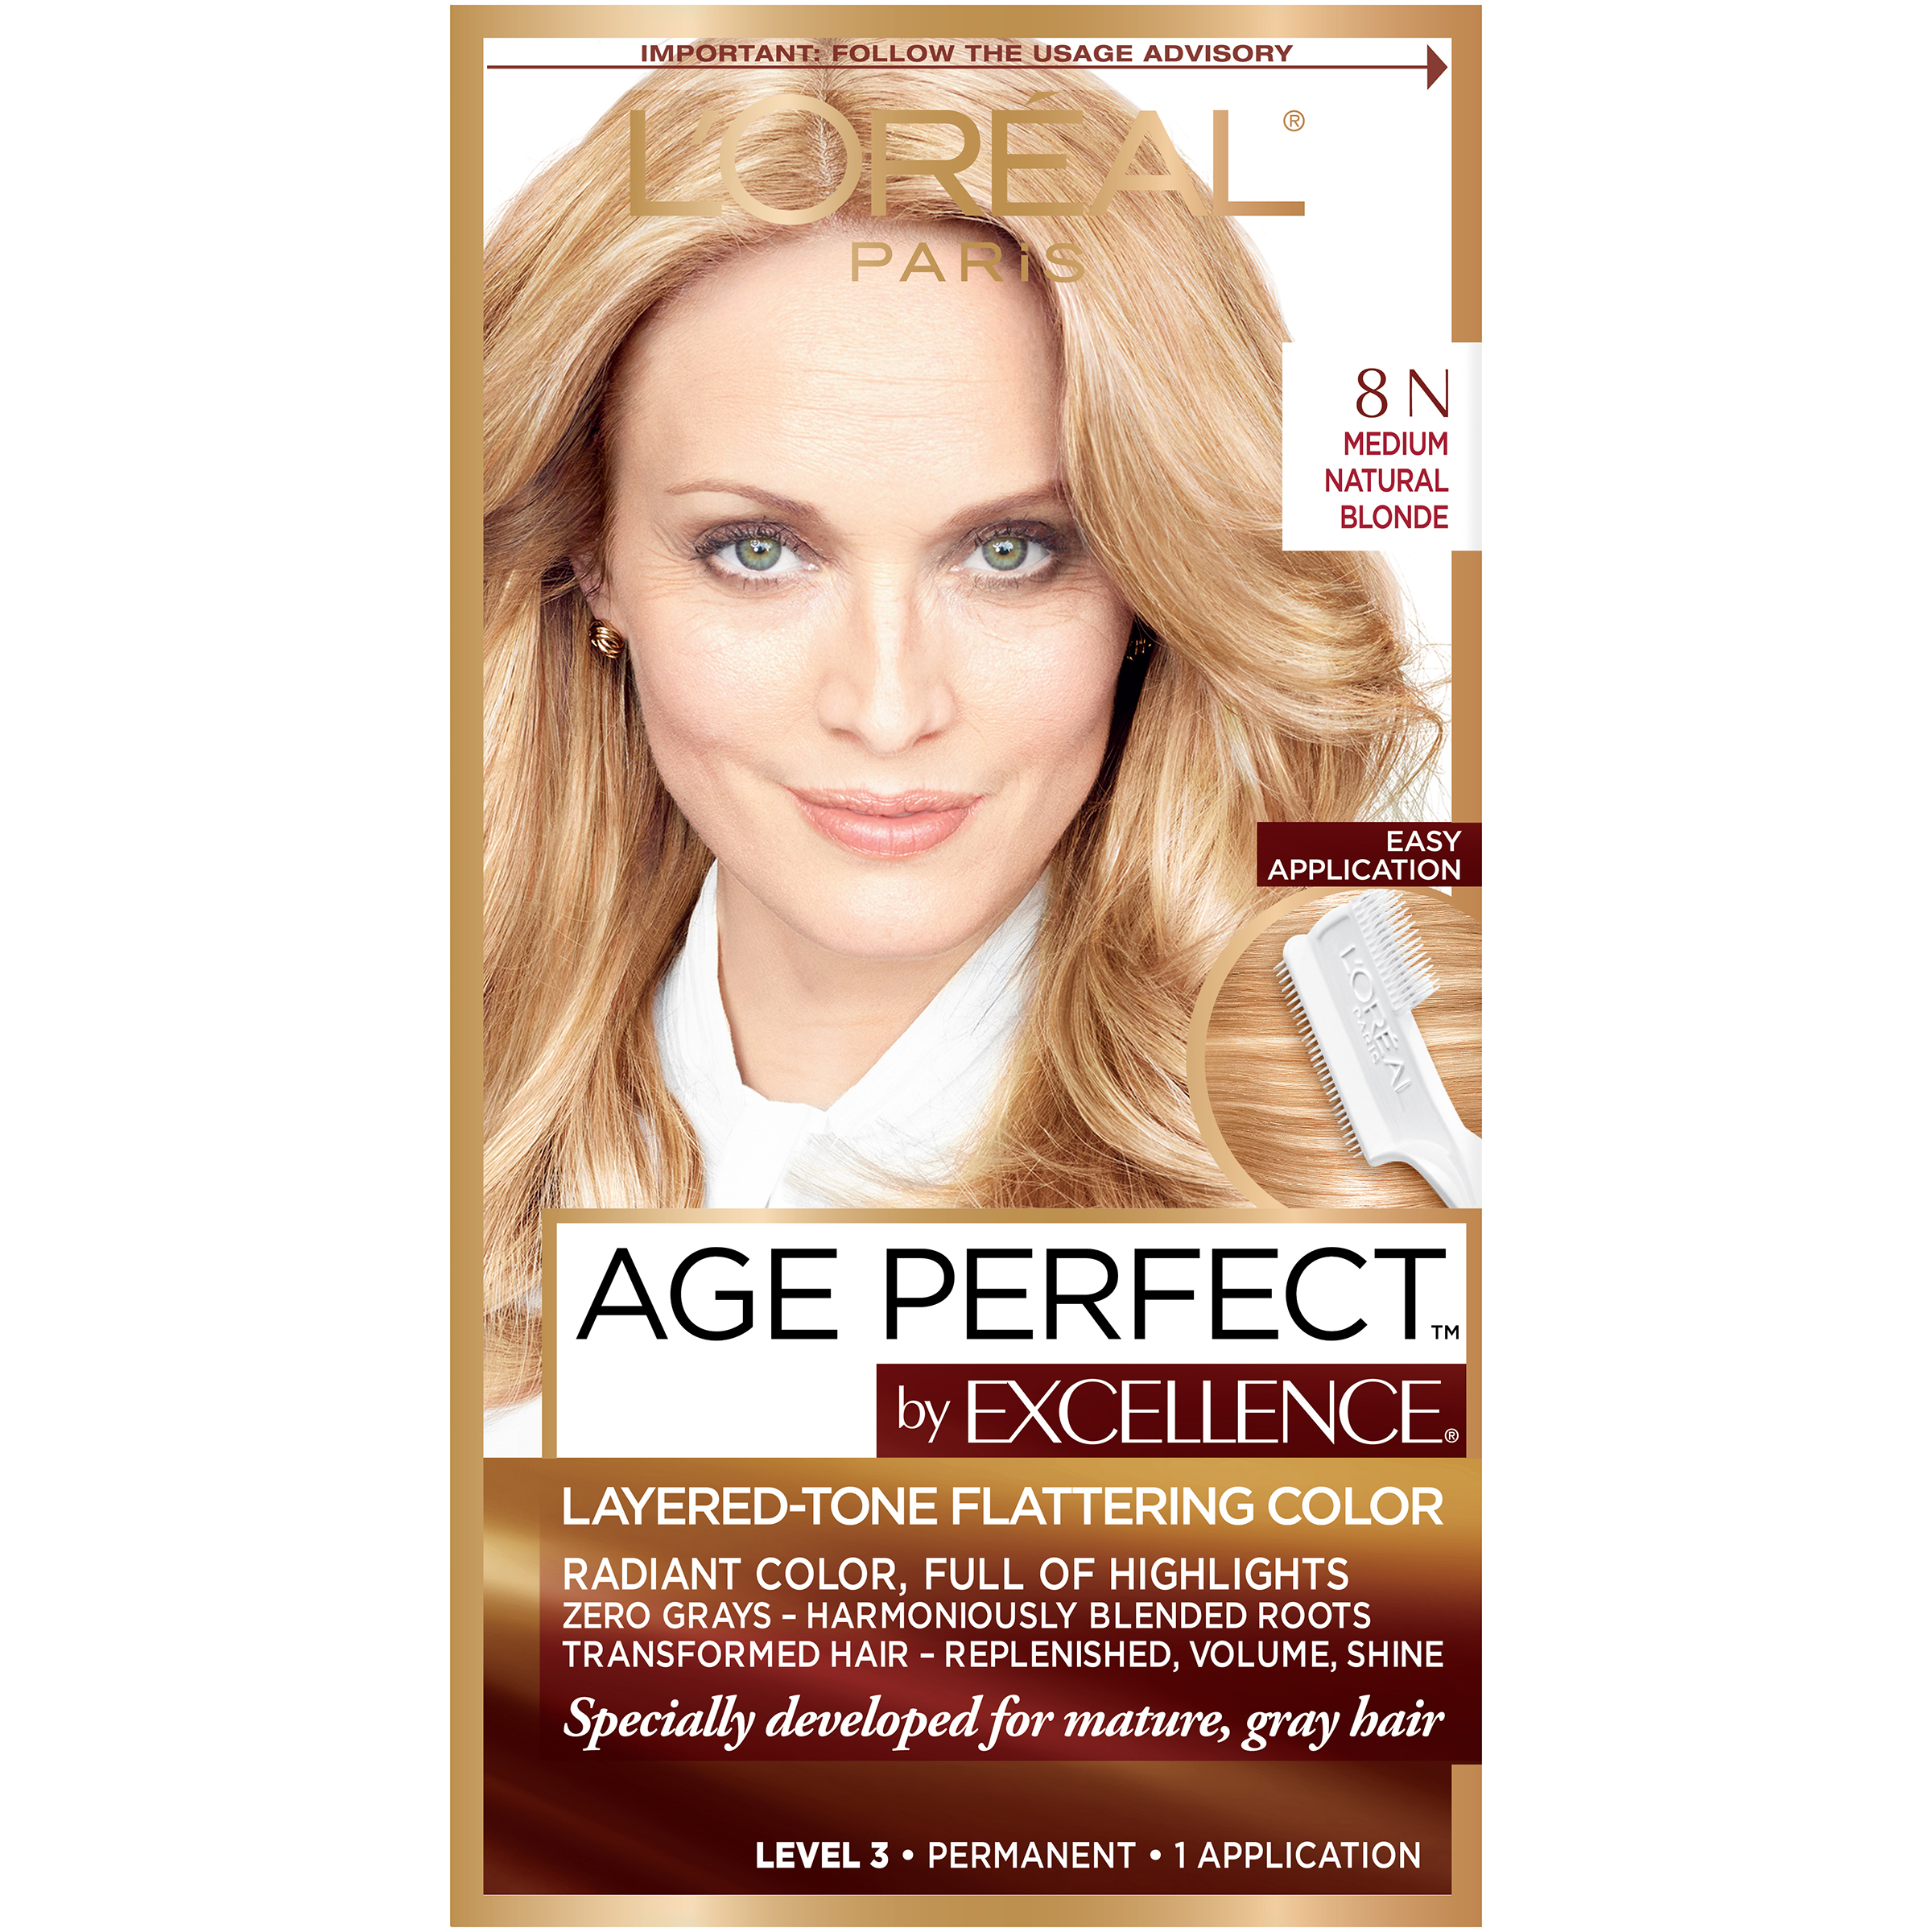 Loreal Excellence Age Permanent Hair Color 8n Medium Natural Blonde